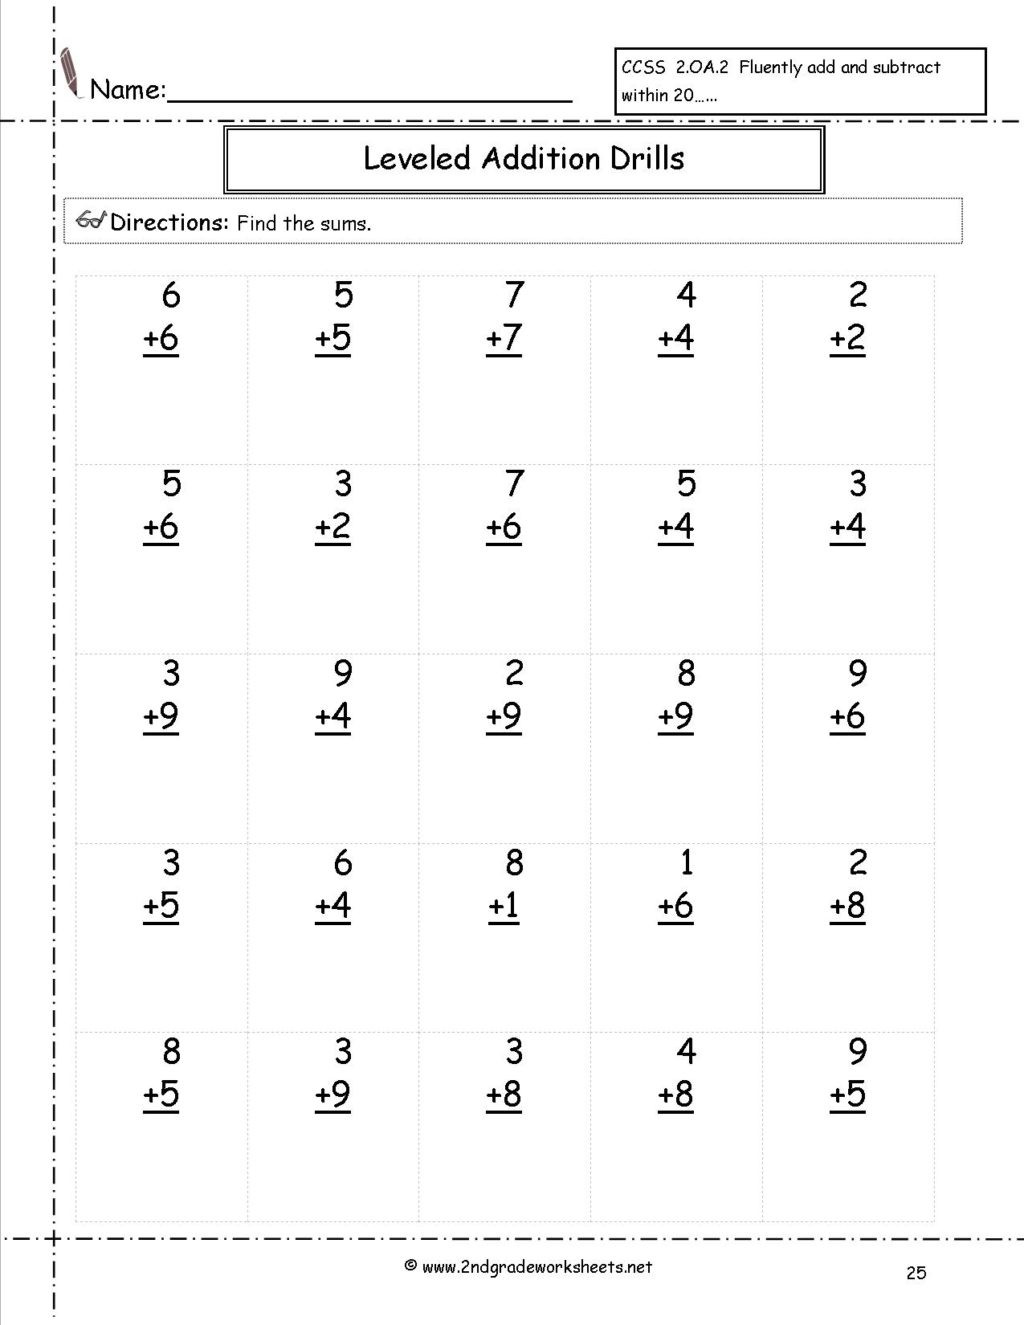 Minute Math Worksheets 1st Grade Worksheet Minute Math Worksheets 2nd Grade Image